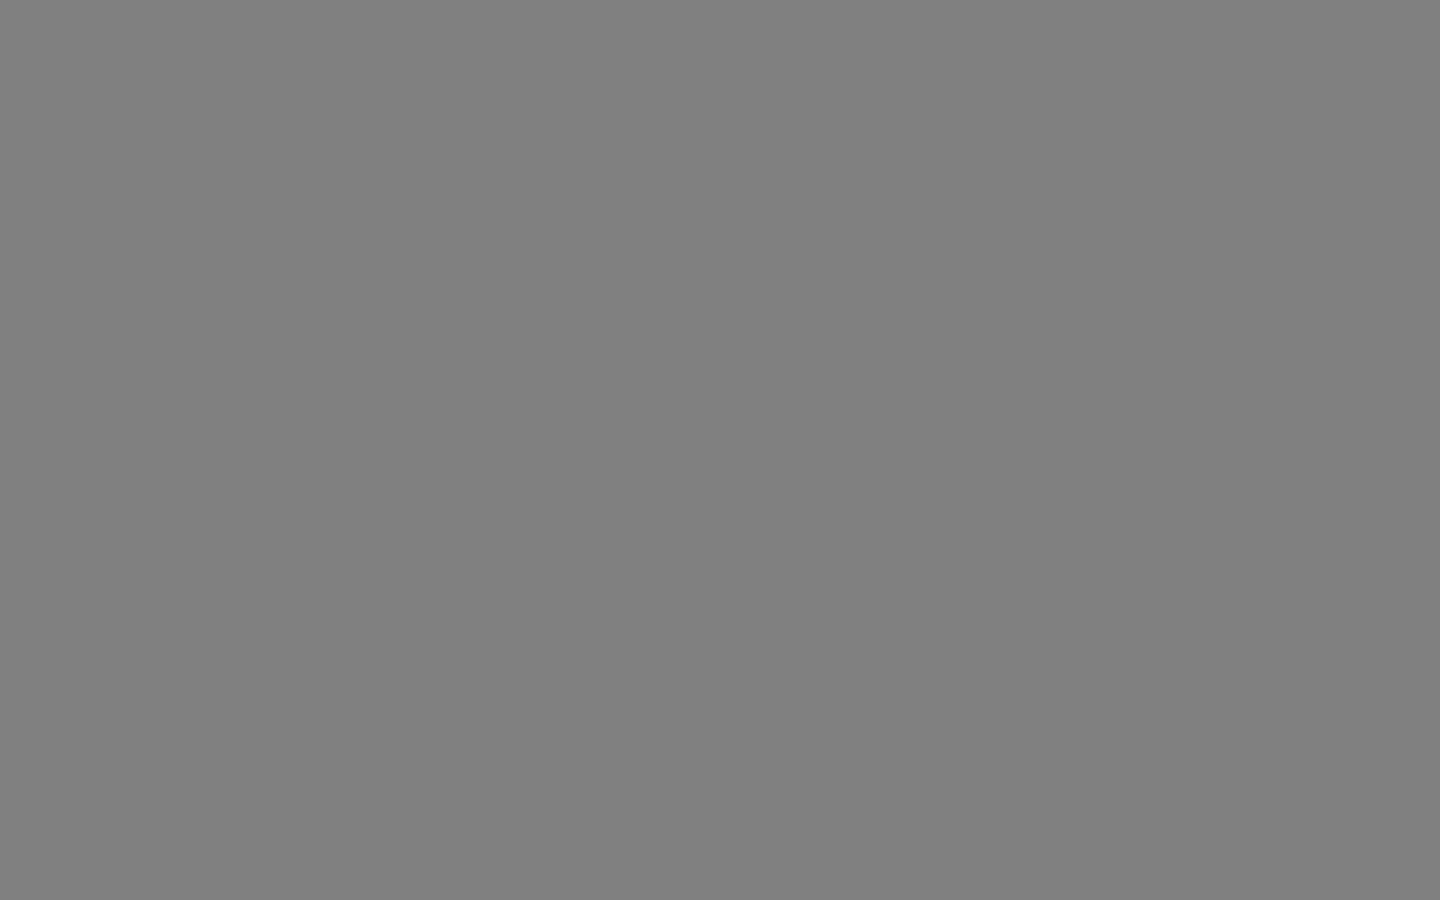 1440x900 Gray Solid Color Background